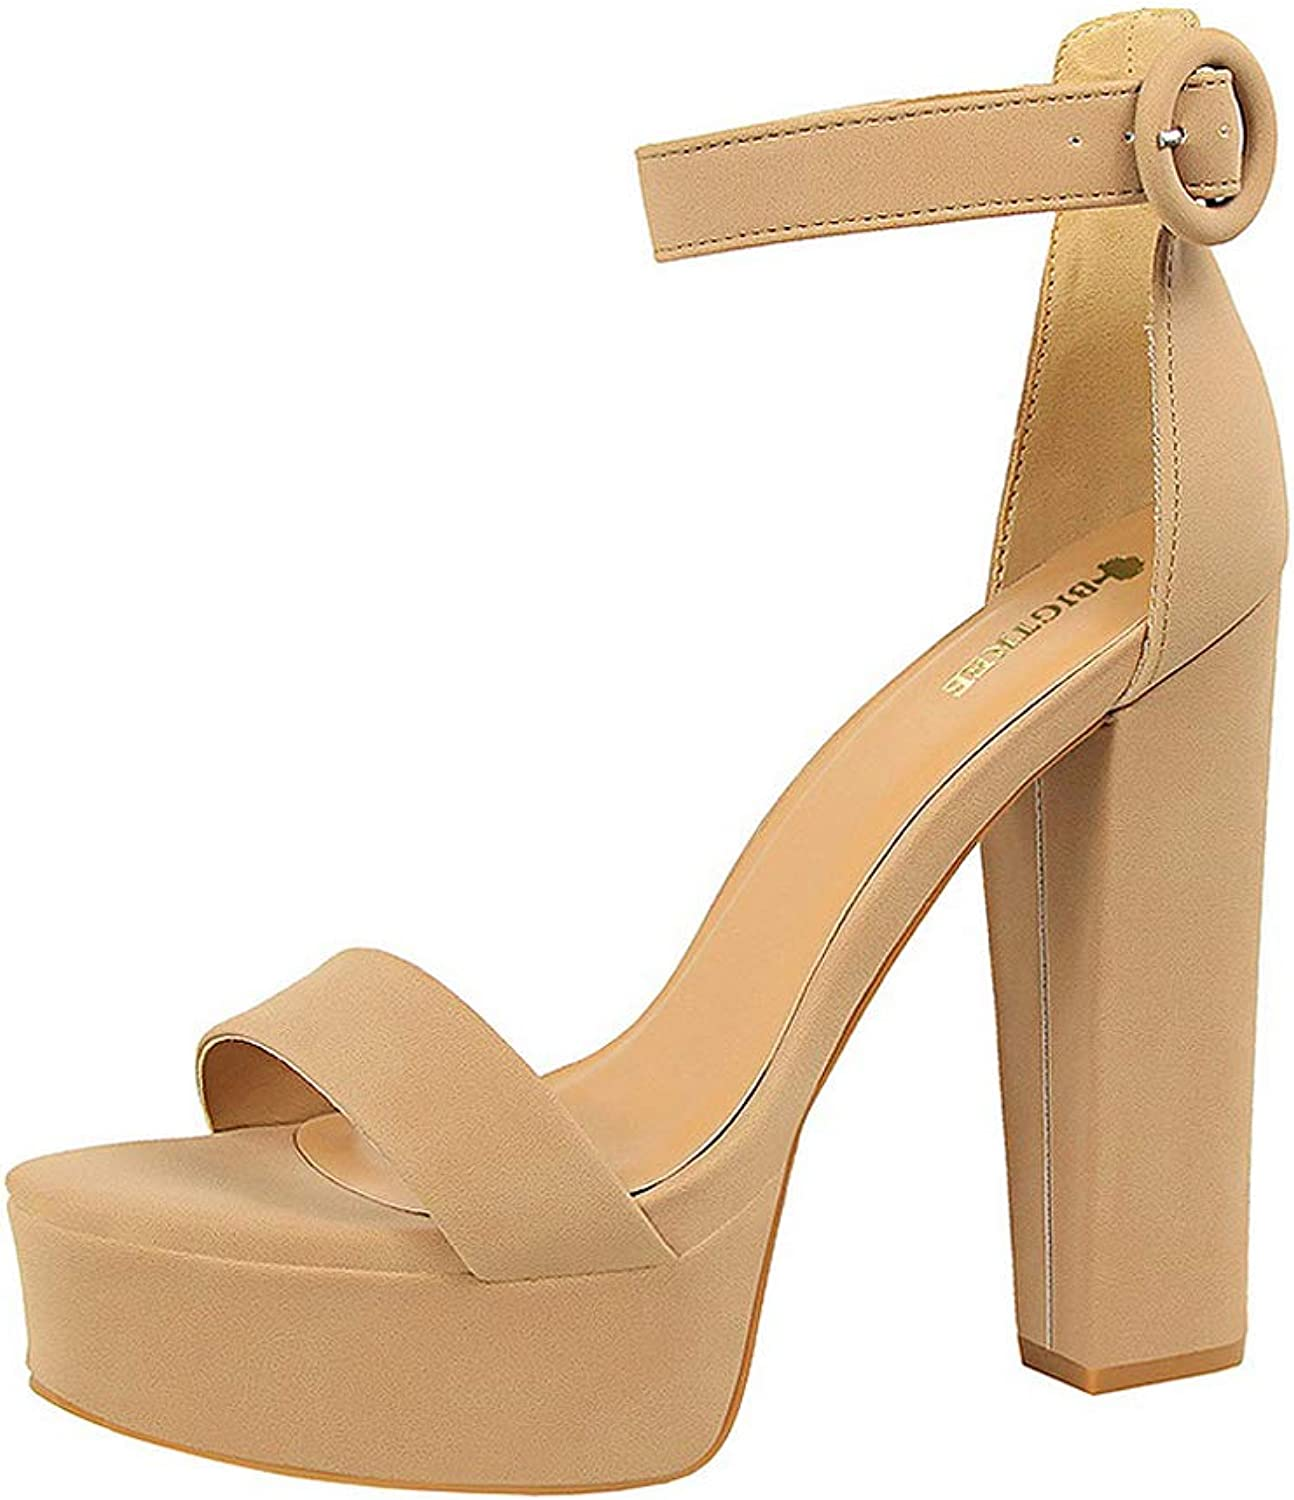 Sandals Thick with Thin high Heels Sexy Nightclub Women's shoes Waterproof Platform Open Toe Belt Buckle Sandals,B,37